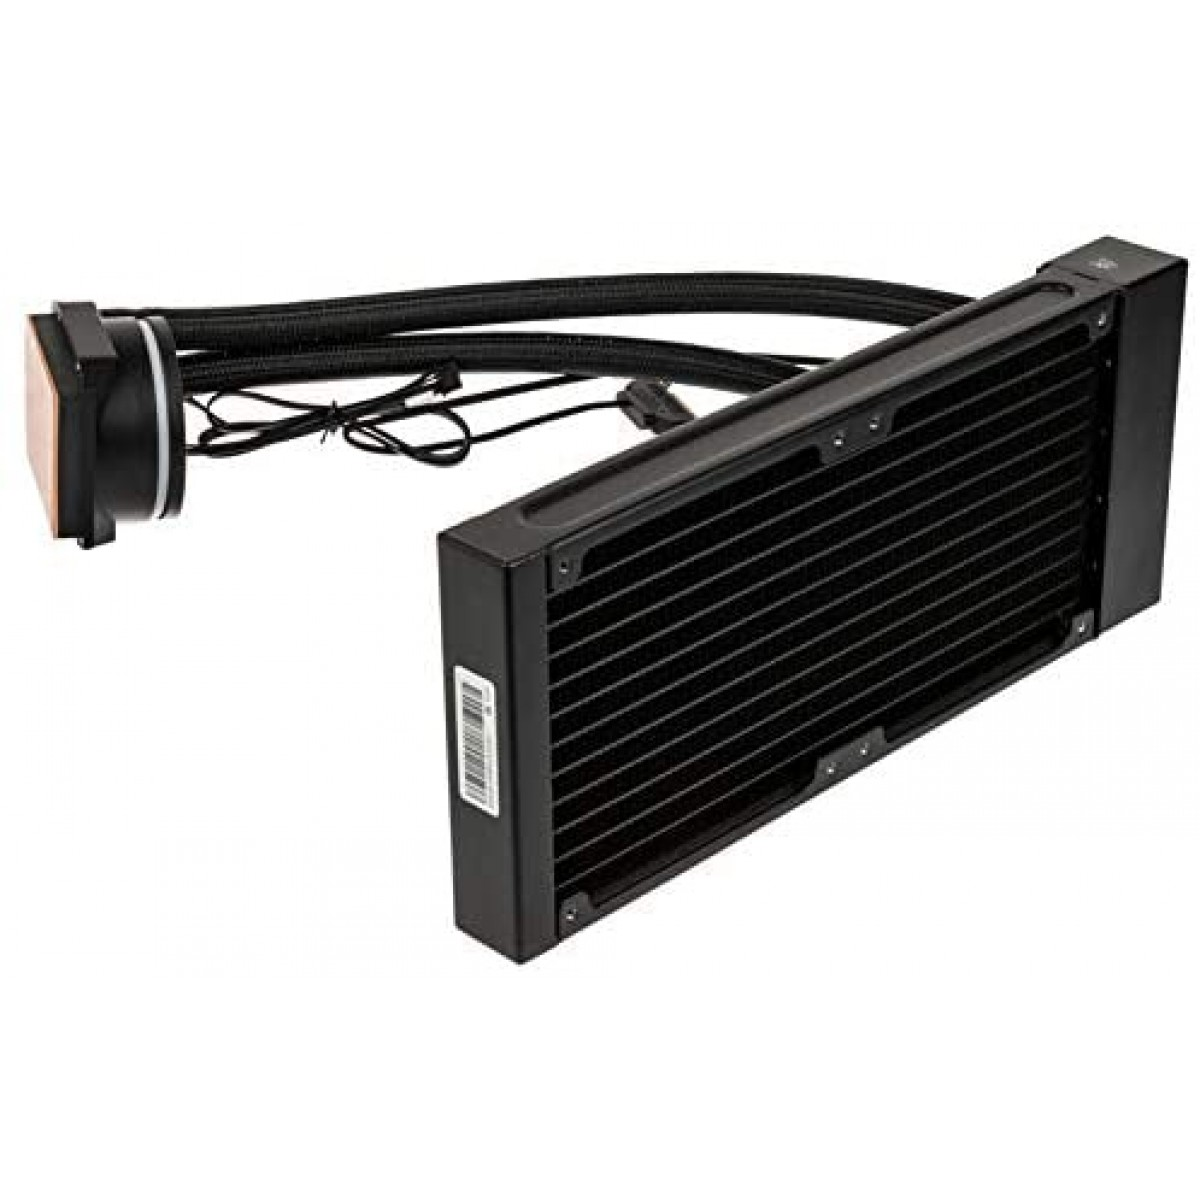 Water Cooler Raijintek EOS 240 RBW, 240mm, ARGB, Intel-AMD, 0R10B00174